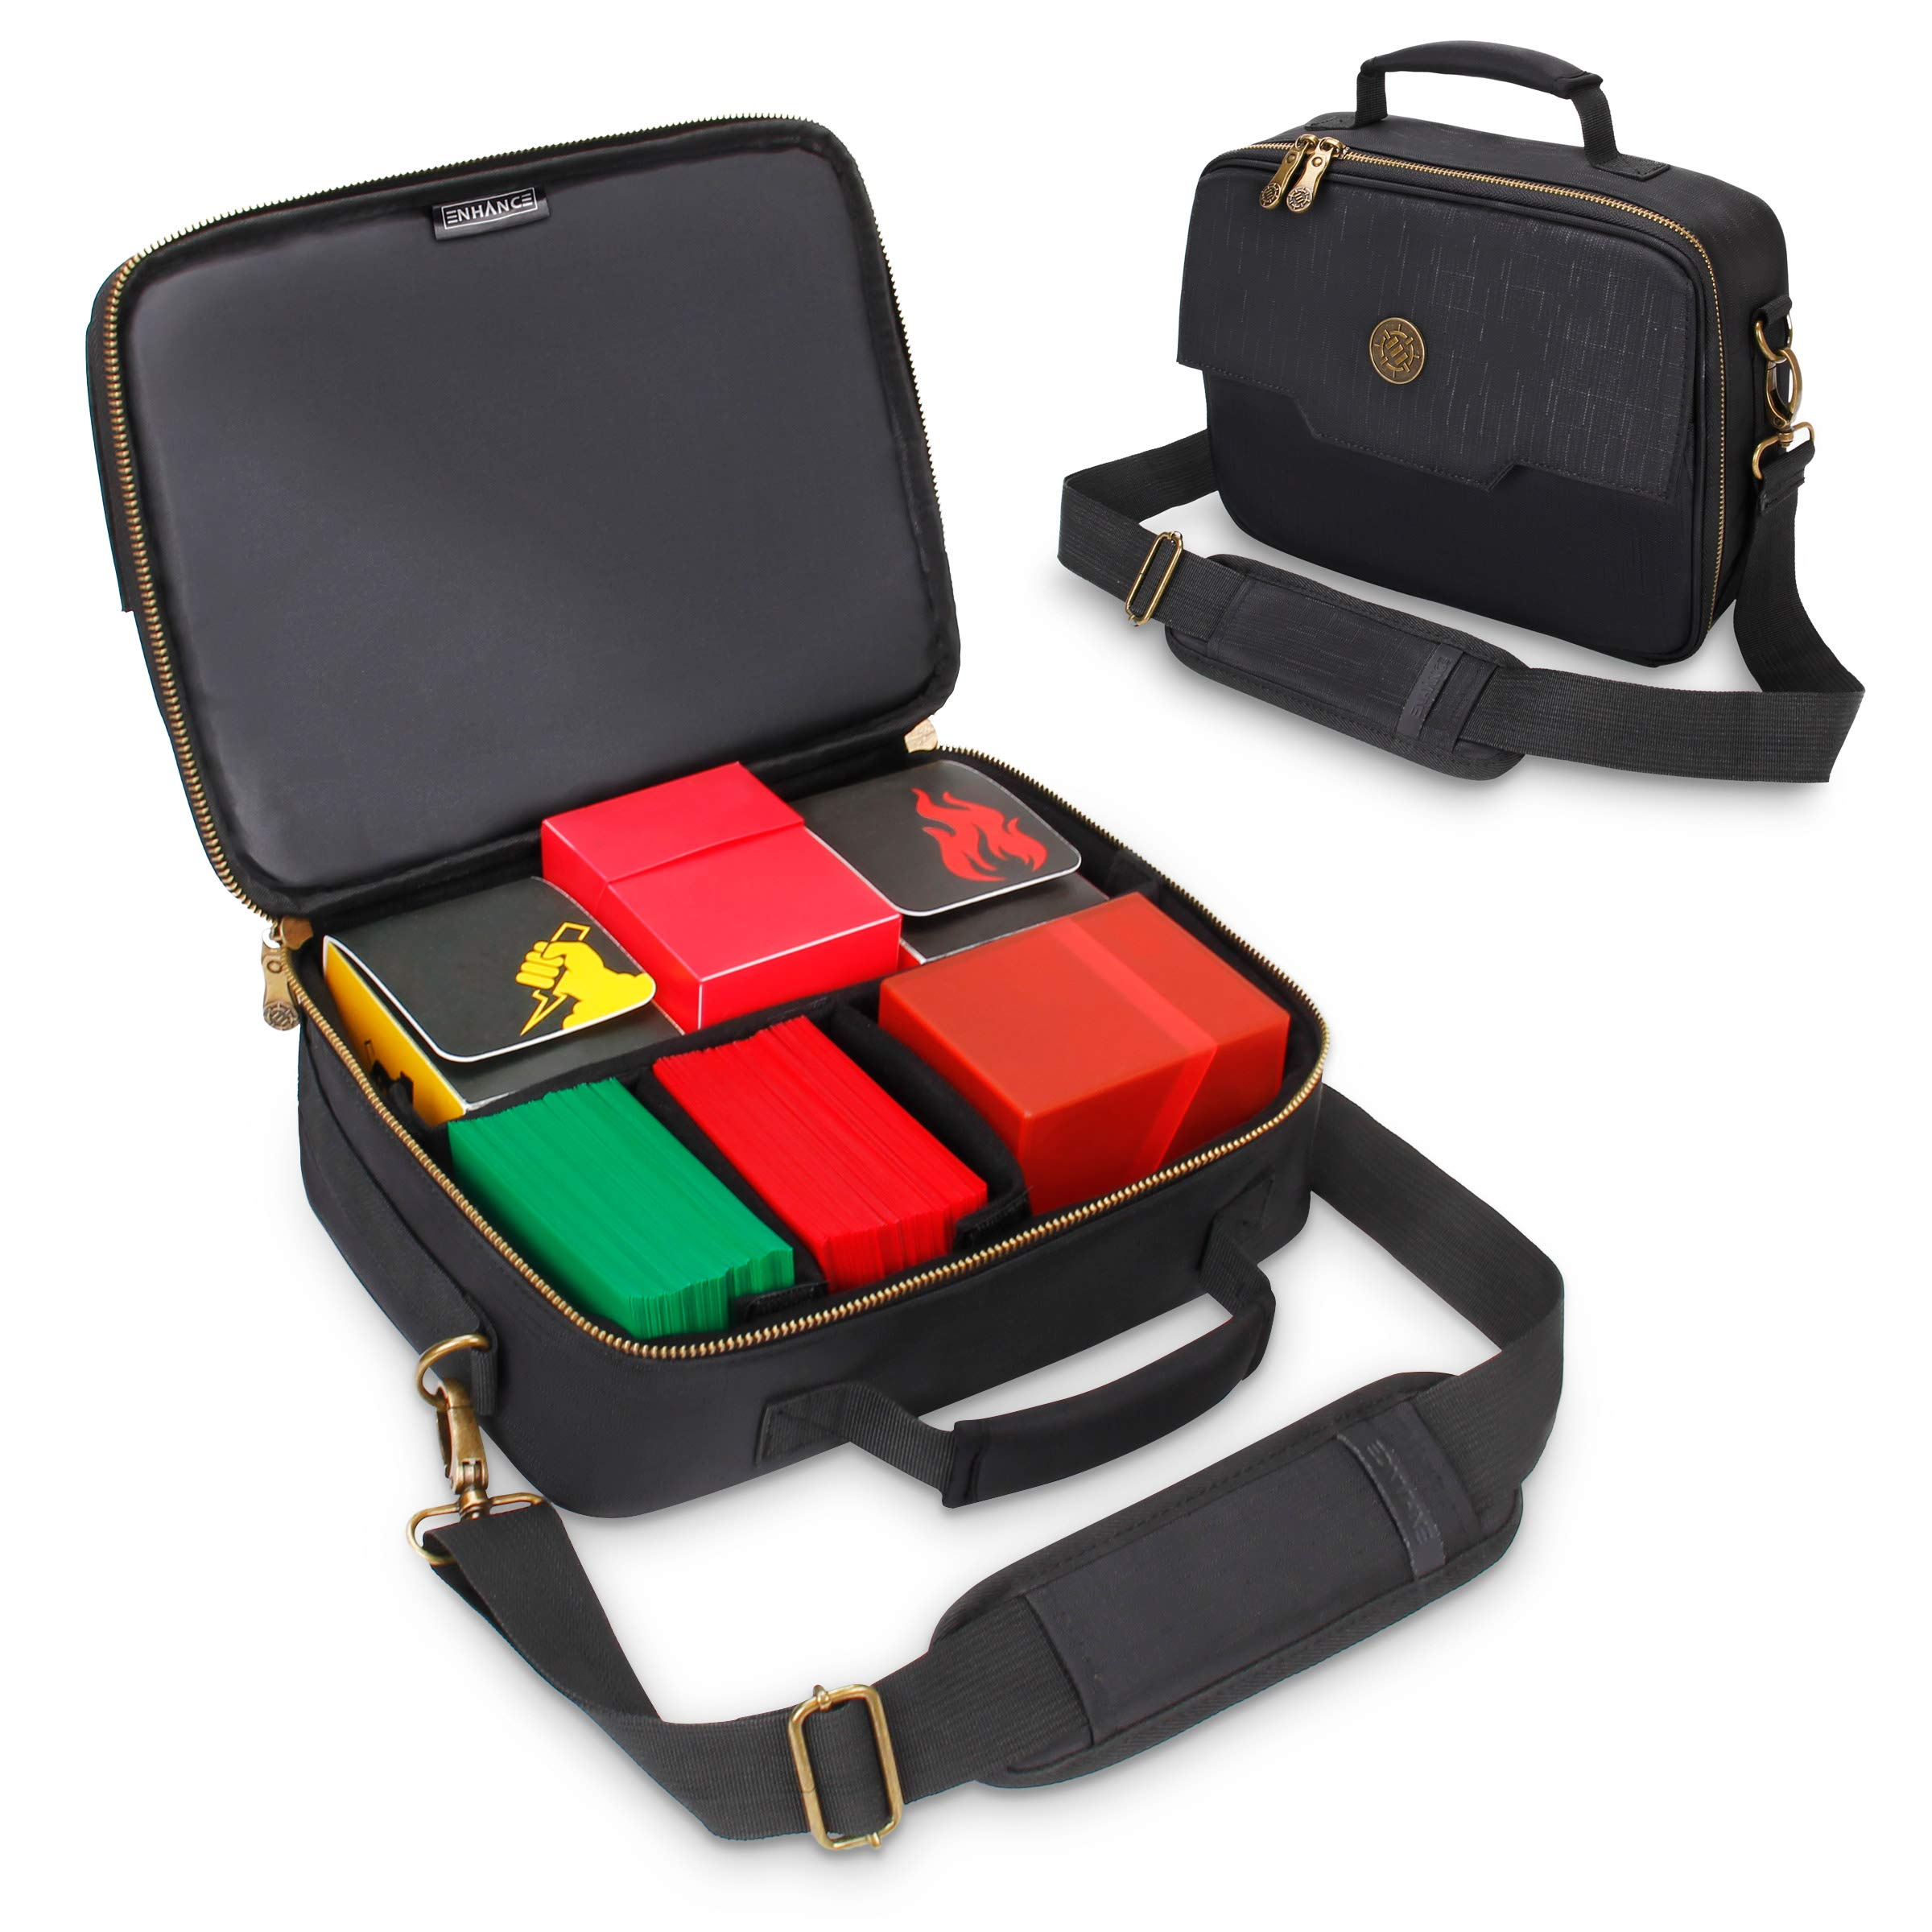 ENHANCE MTG Card Box Storage Case - Deck Holder Card Carrying Case Bag Compatible with Magic The Gathering, Pokemon, Cards Against Humanity - Pencil Loops, Pocket for Dice, Tokens